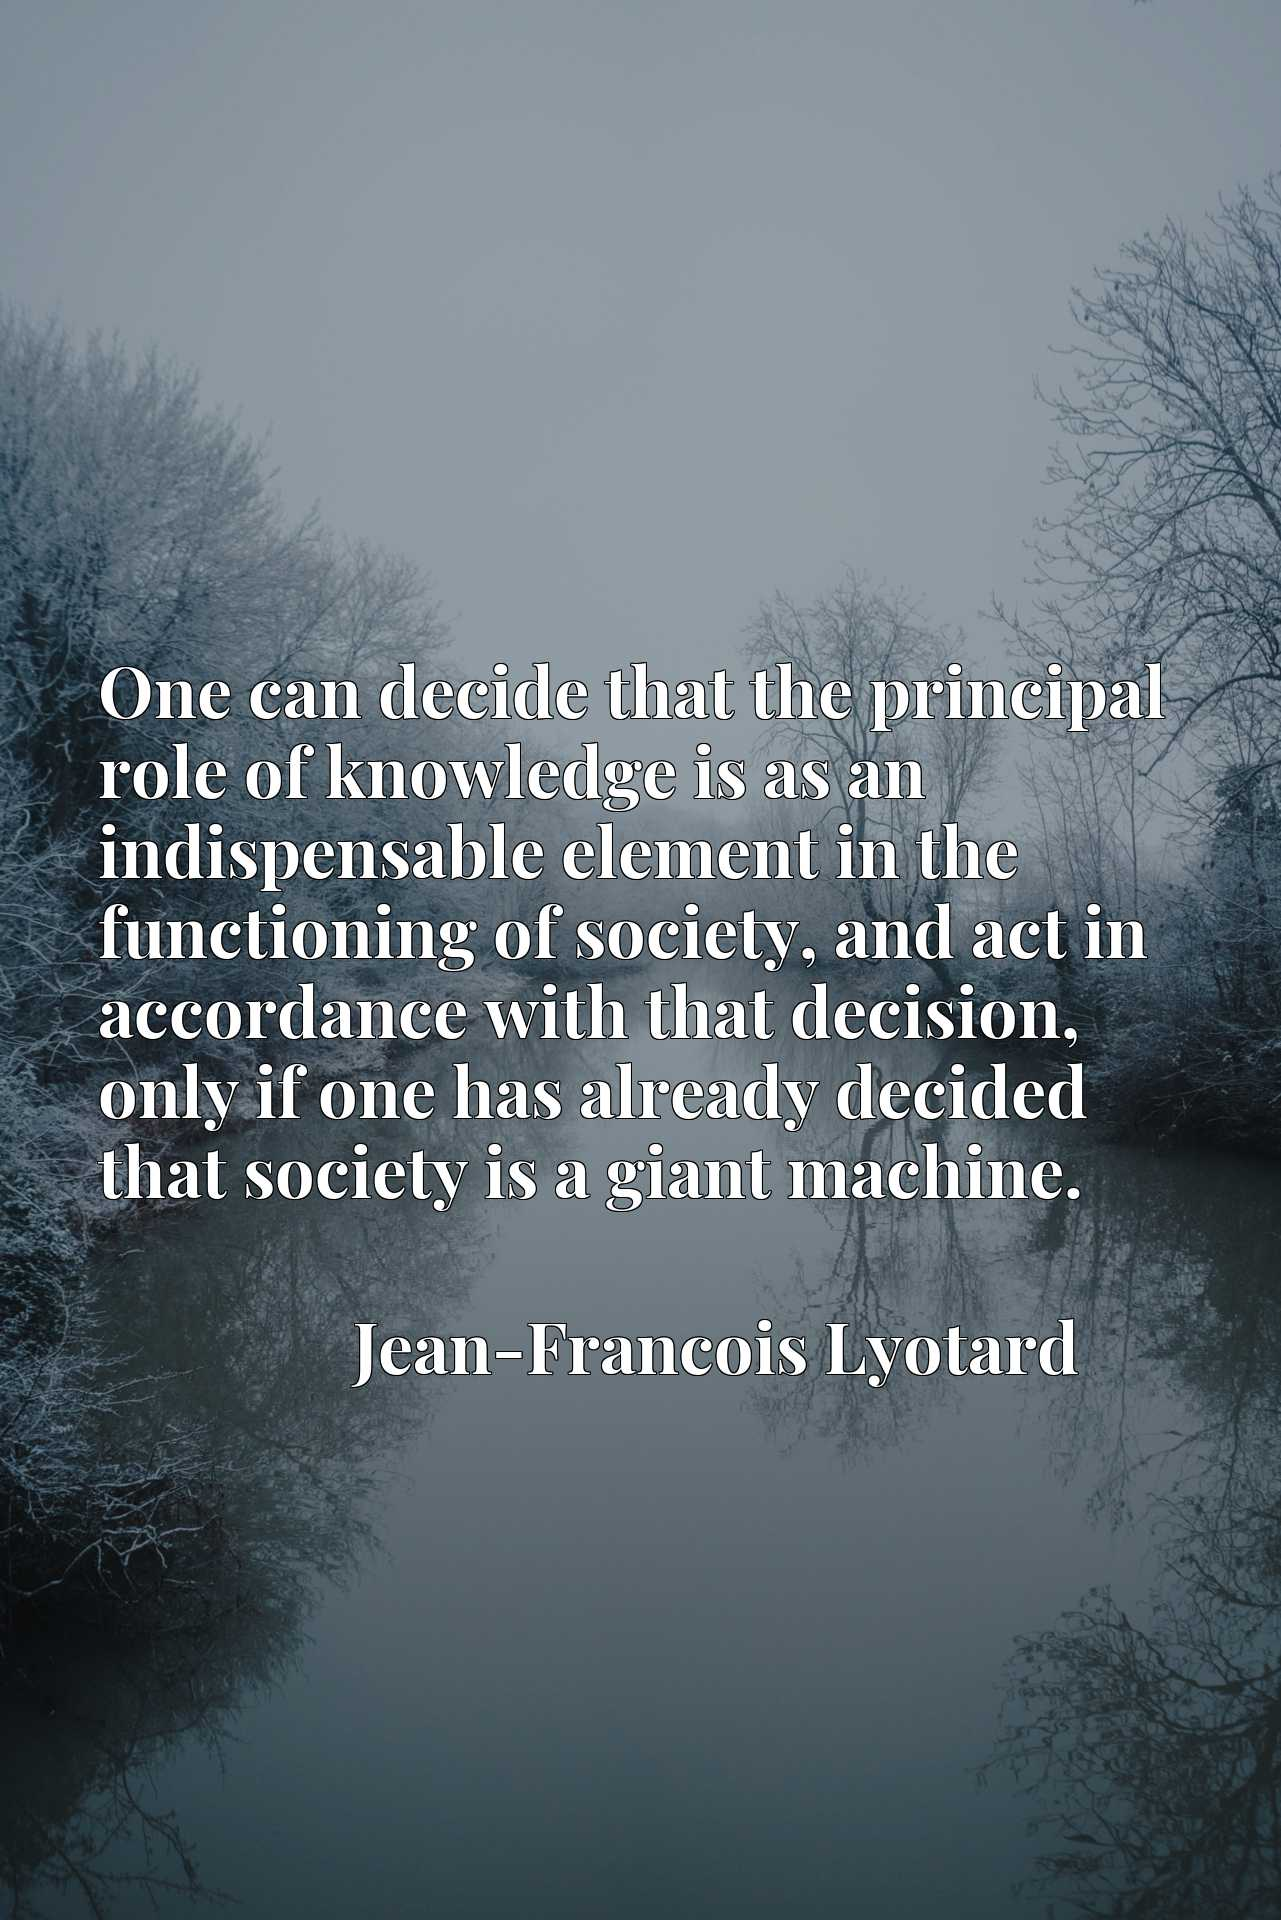 Quote Picture :One can decide that the principal role of knowledge is as an indispensable element in the functioning of society, and act in accordance with that decision, only if one has already decided that society is a giant machine.